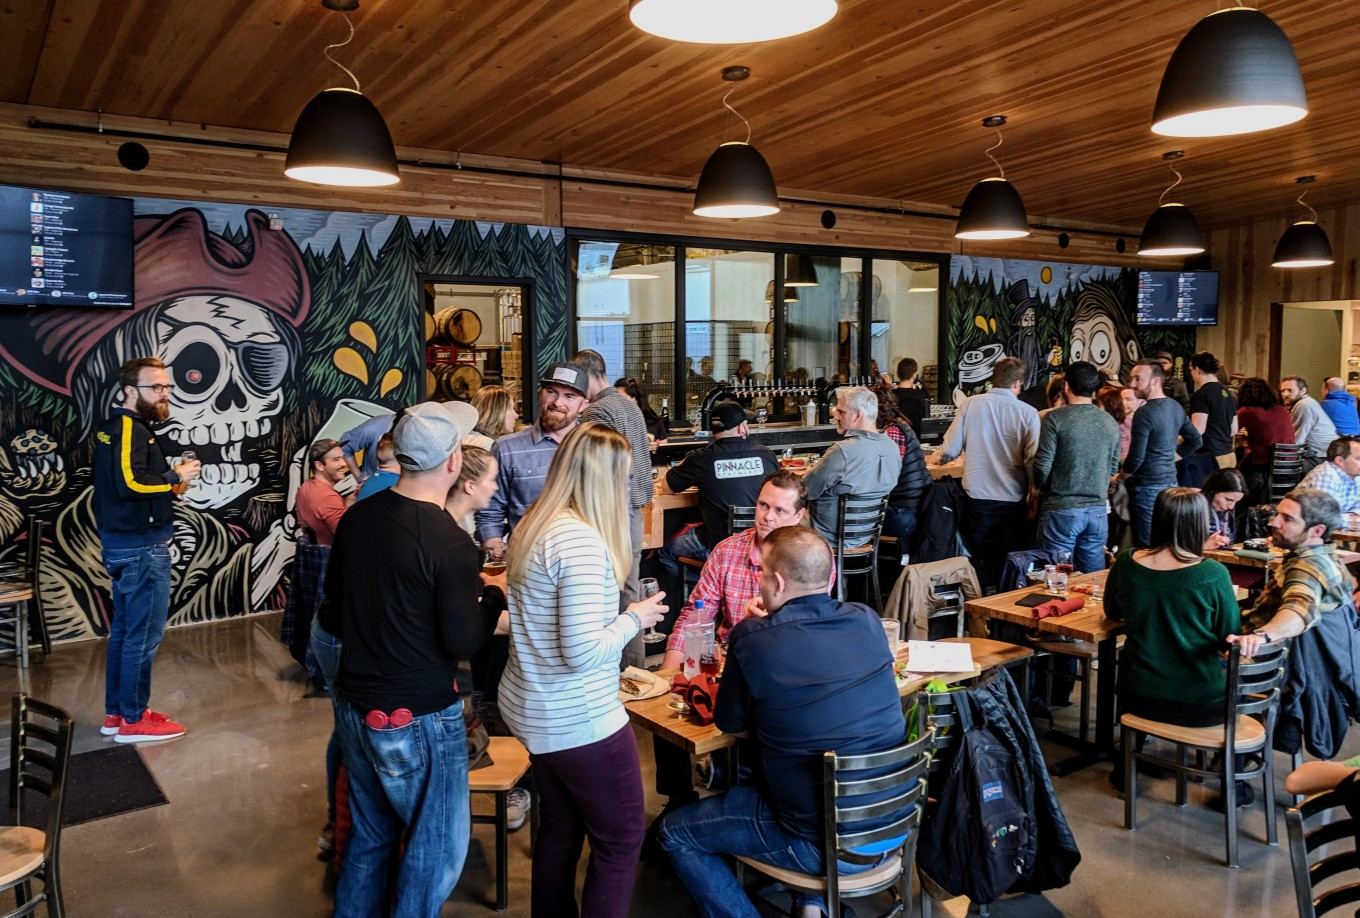 Restaurant Taproom Great Notion NW Portland Oregon